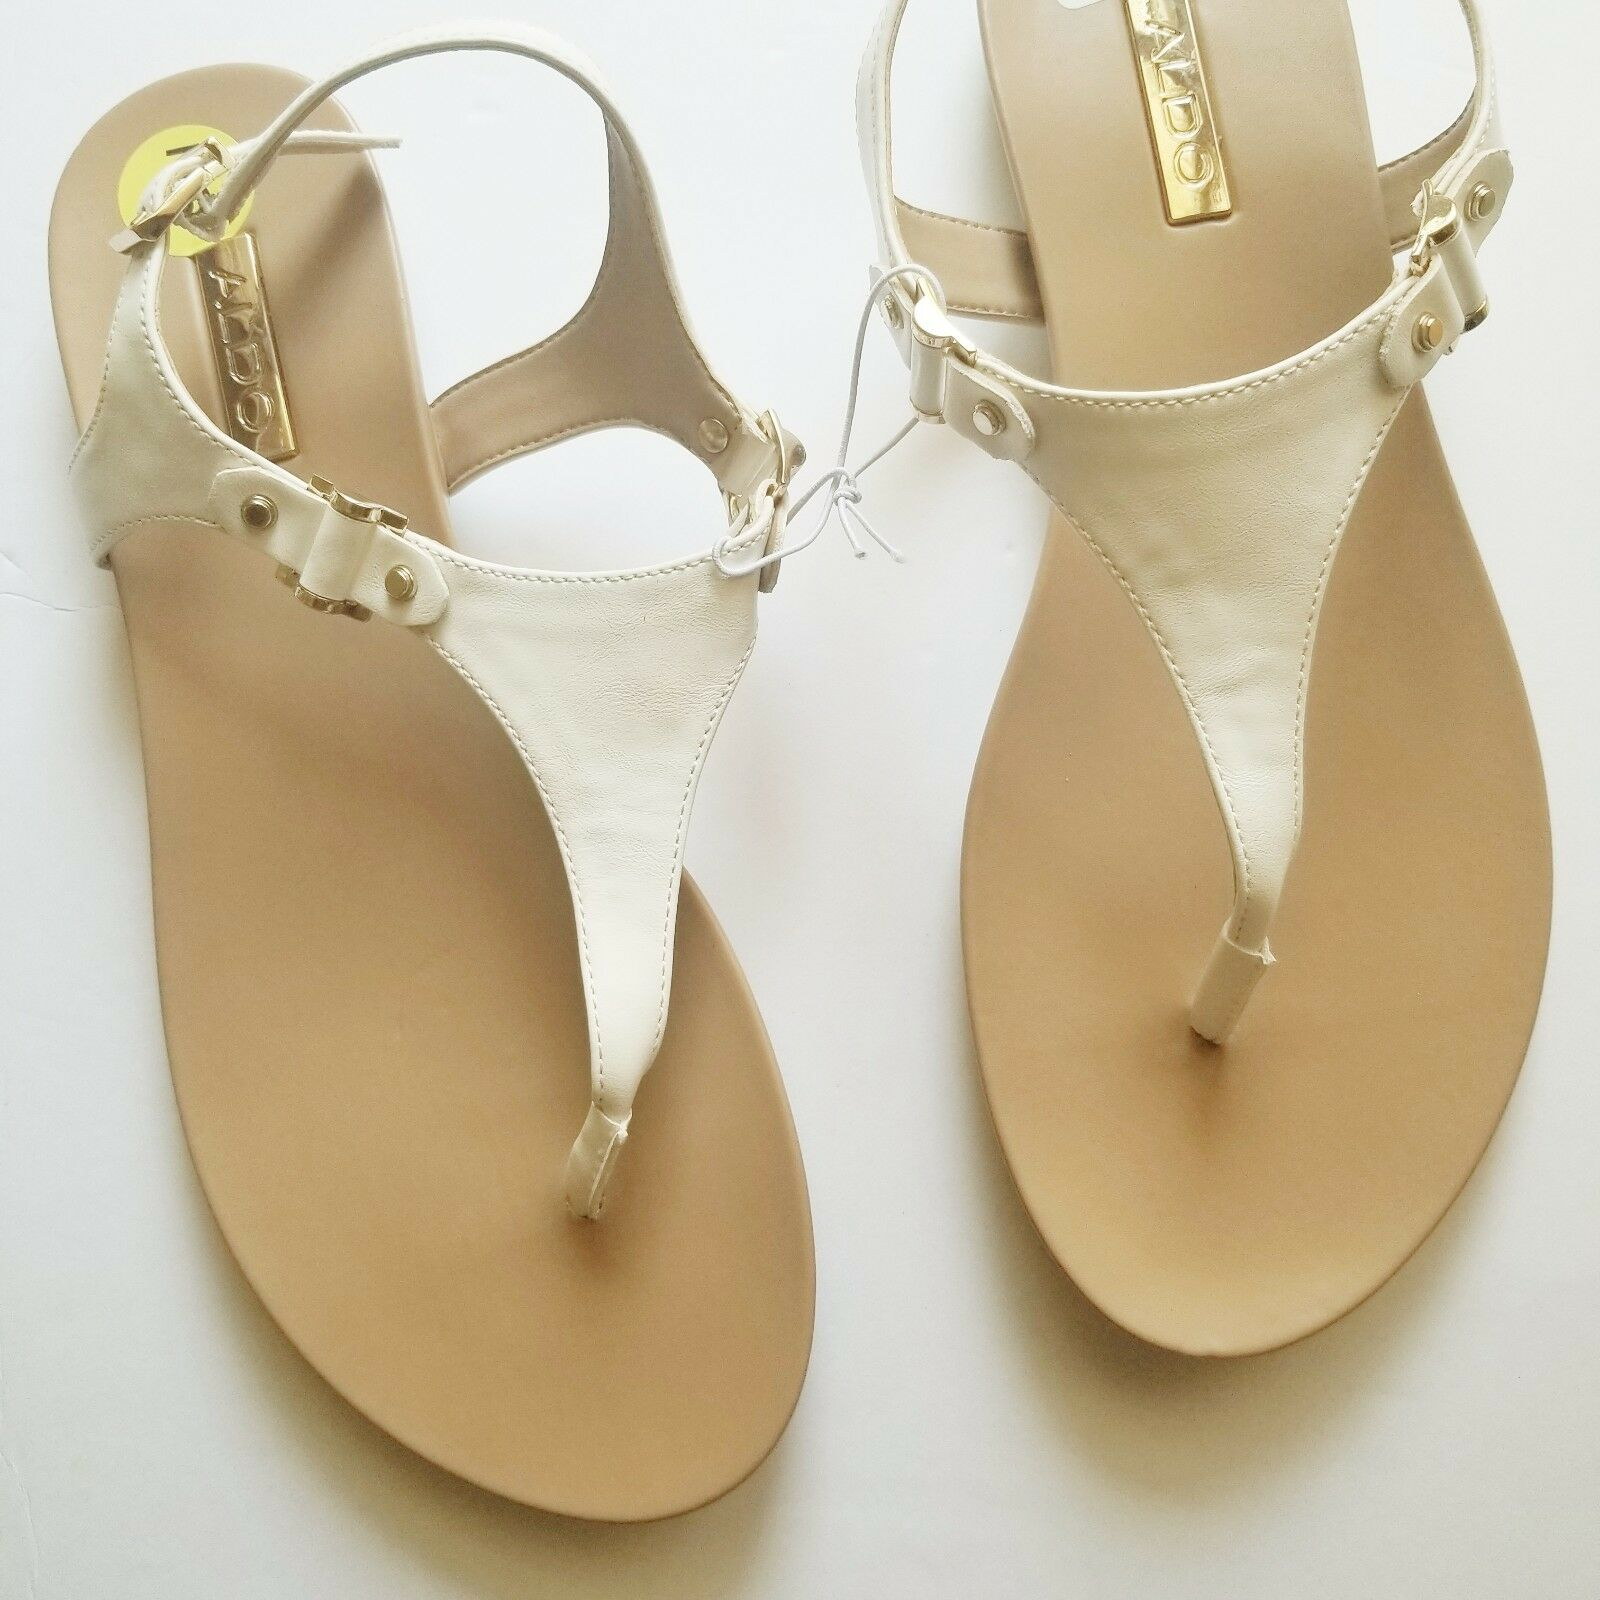 Aldo Thong Sandals femmes Taille 9 Nude Tan blanc with or Tone hardware